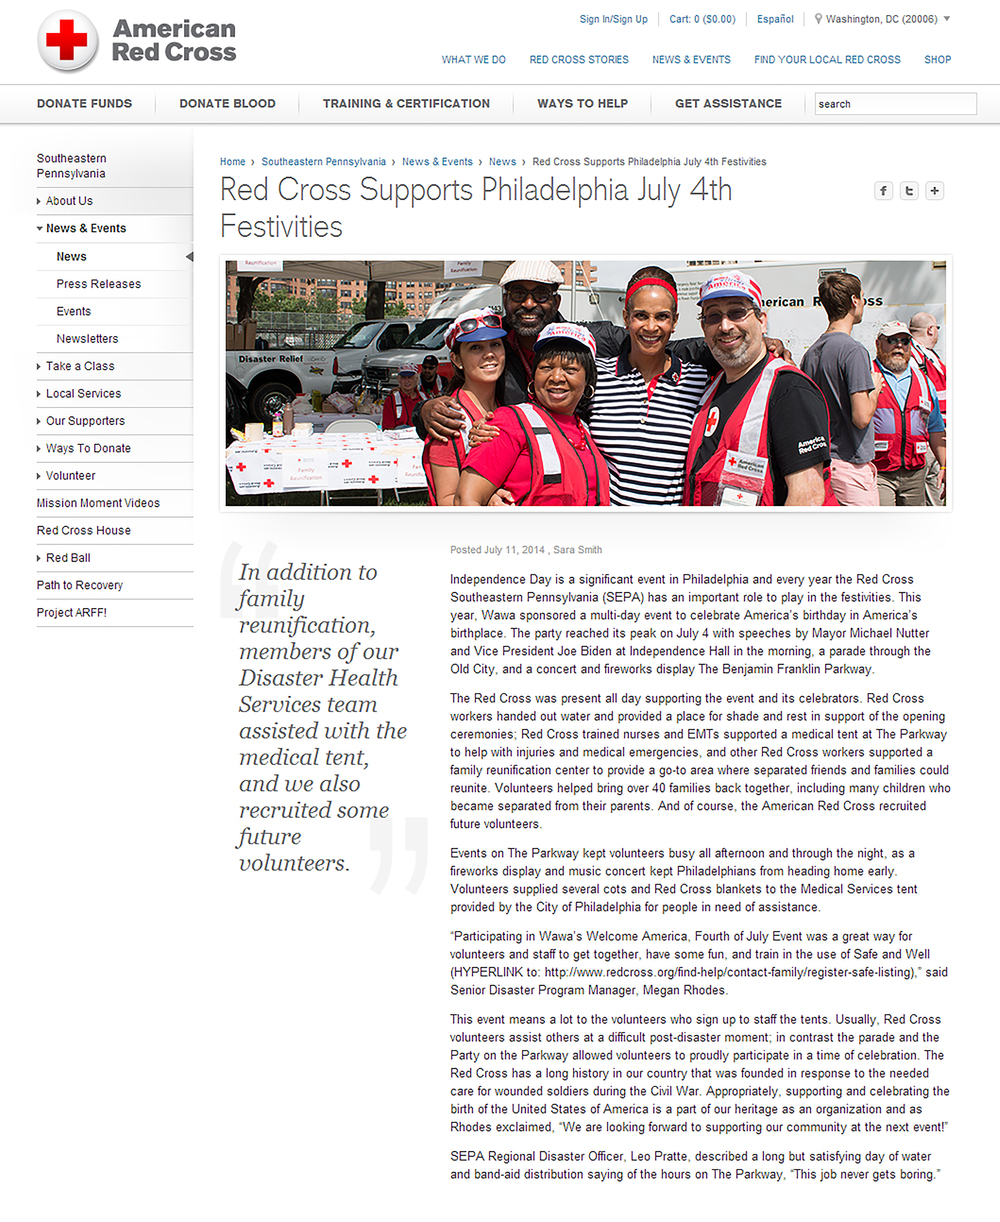 This article is dedicated to Red Cross's efforts and participation in 4th of July festivities in Philadelphia.